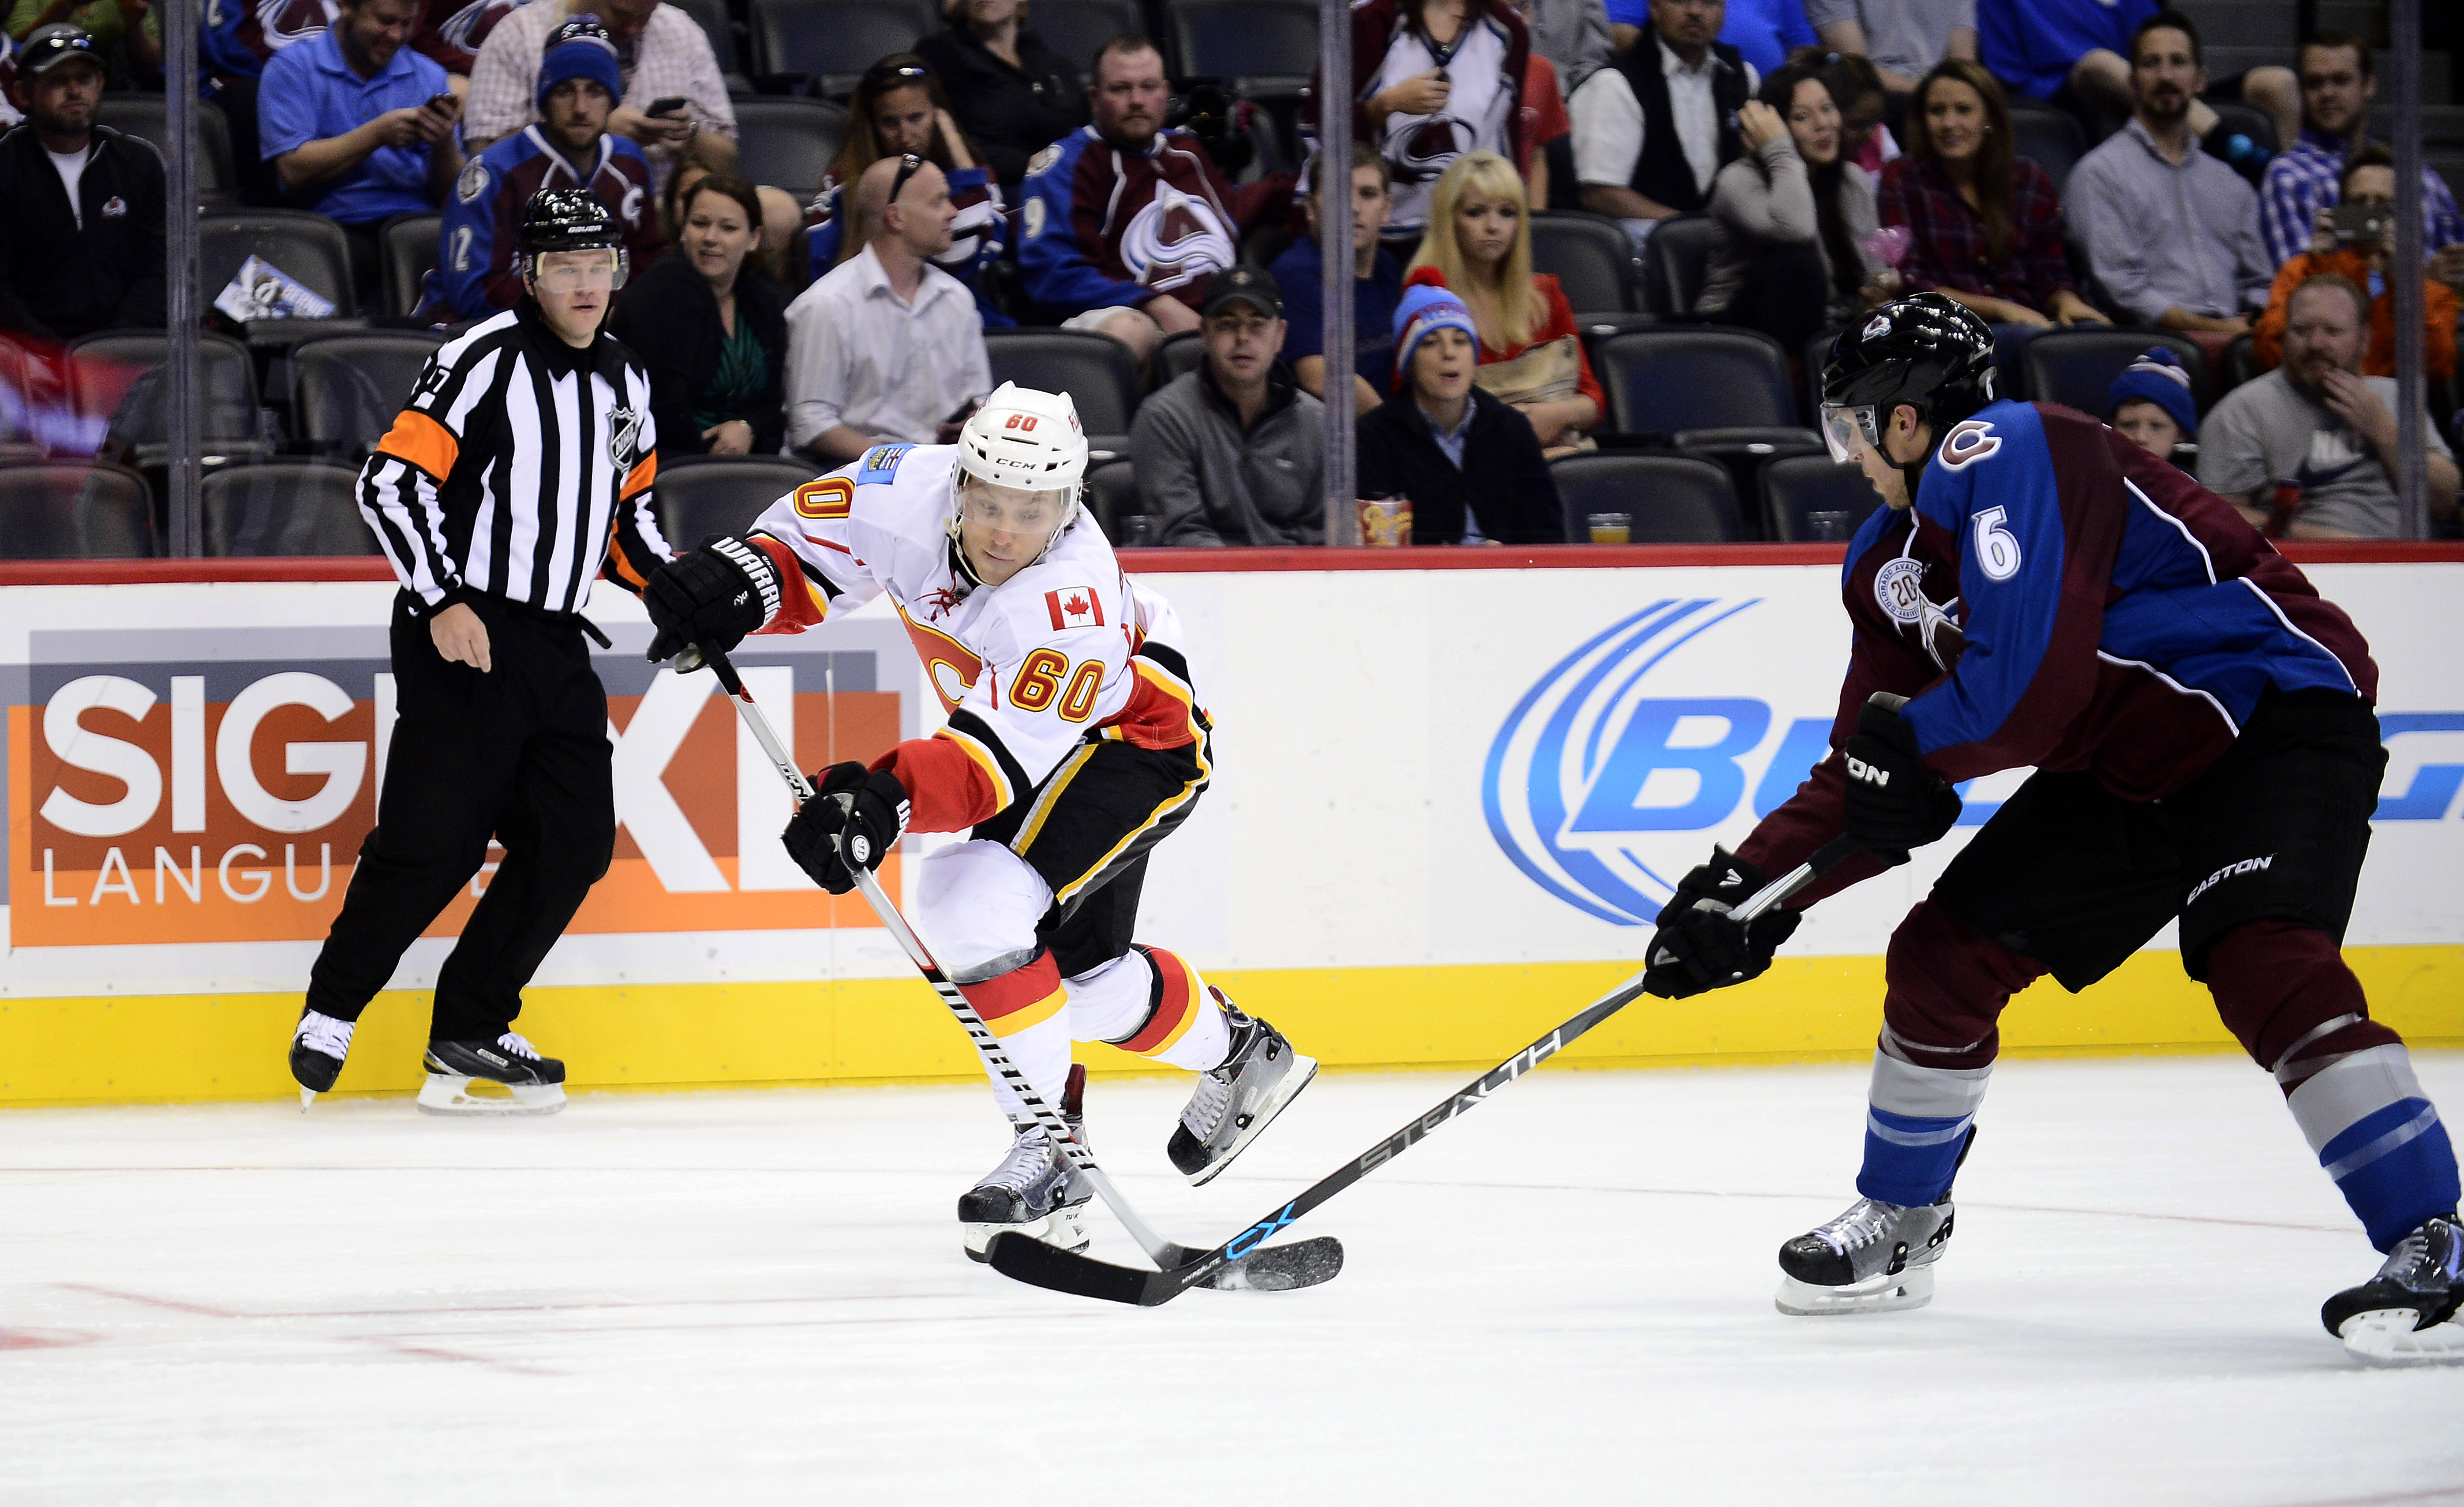 Centre Markus Granlund scored his second goal of the season in the loss.